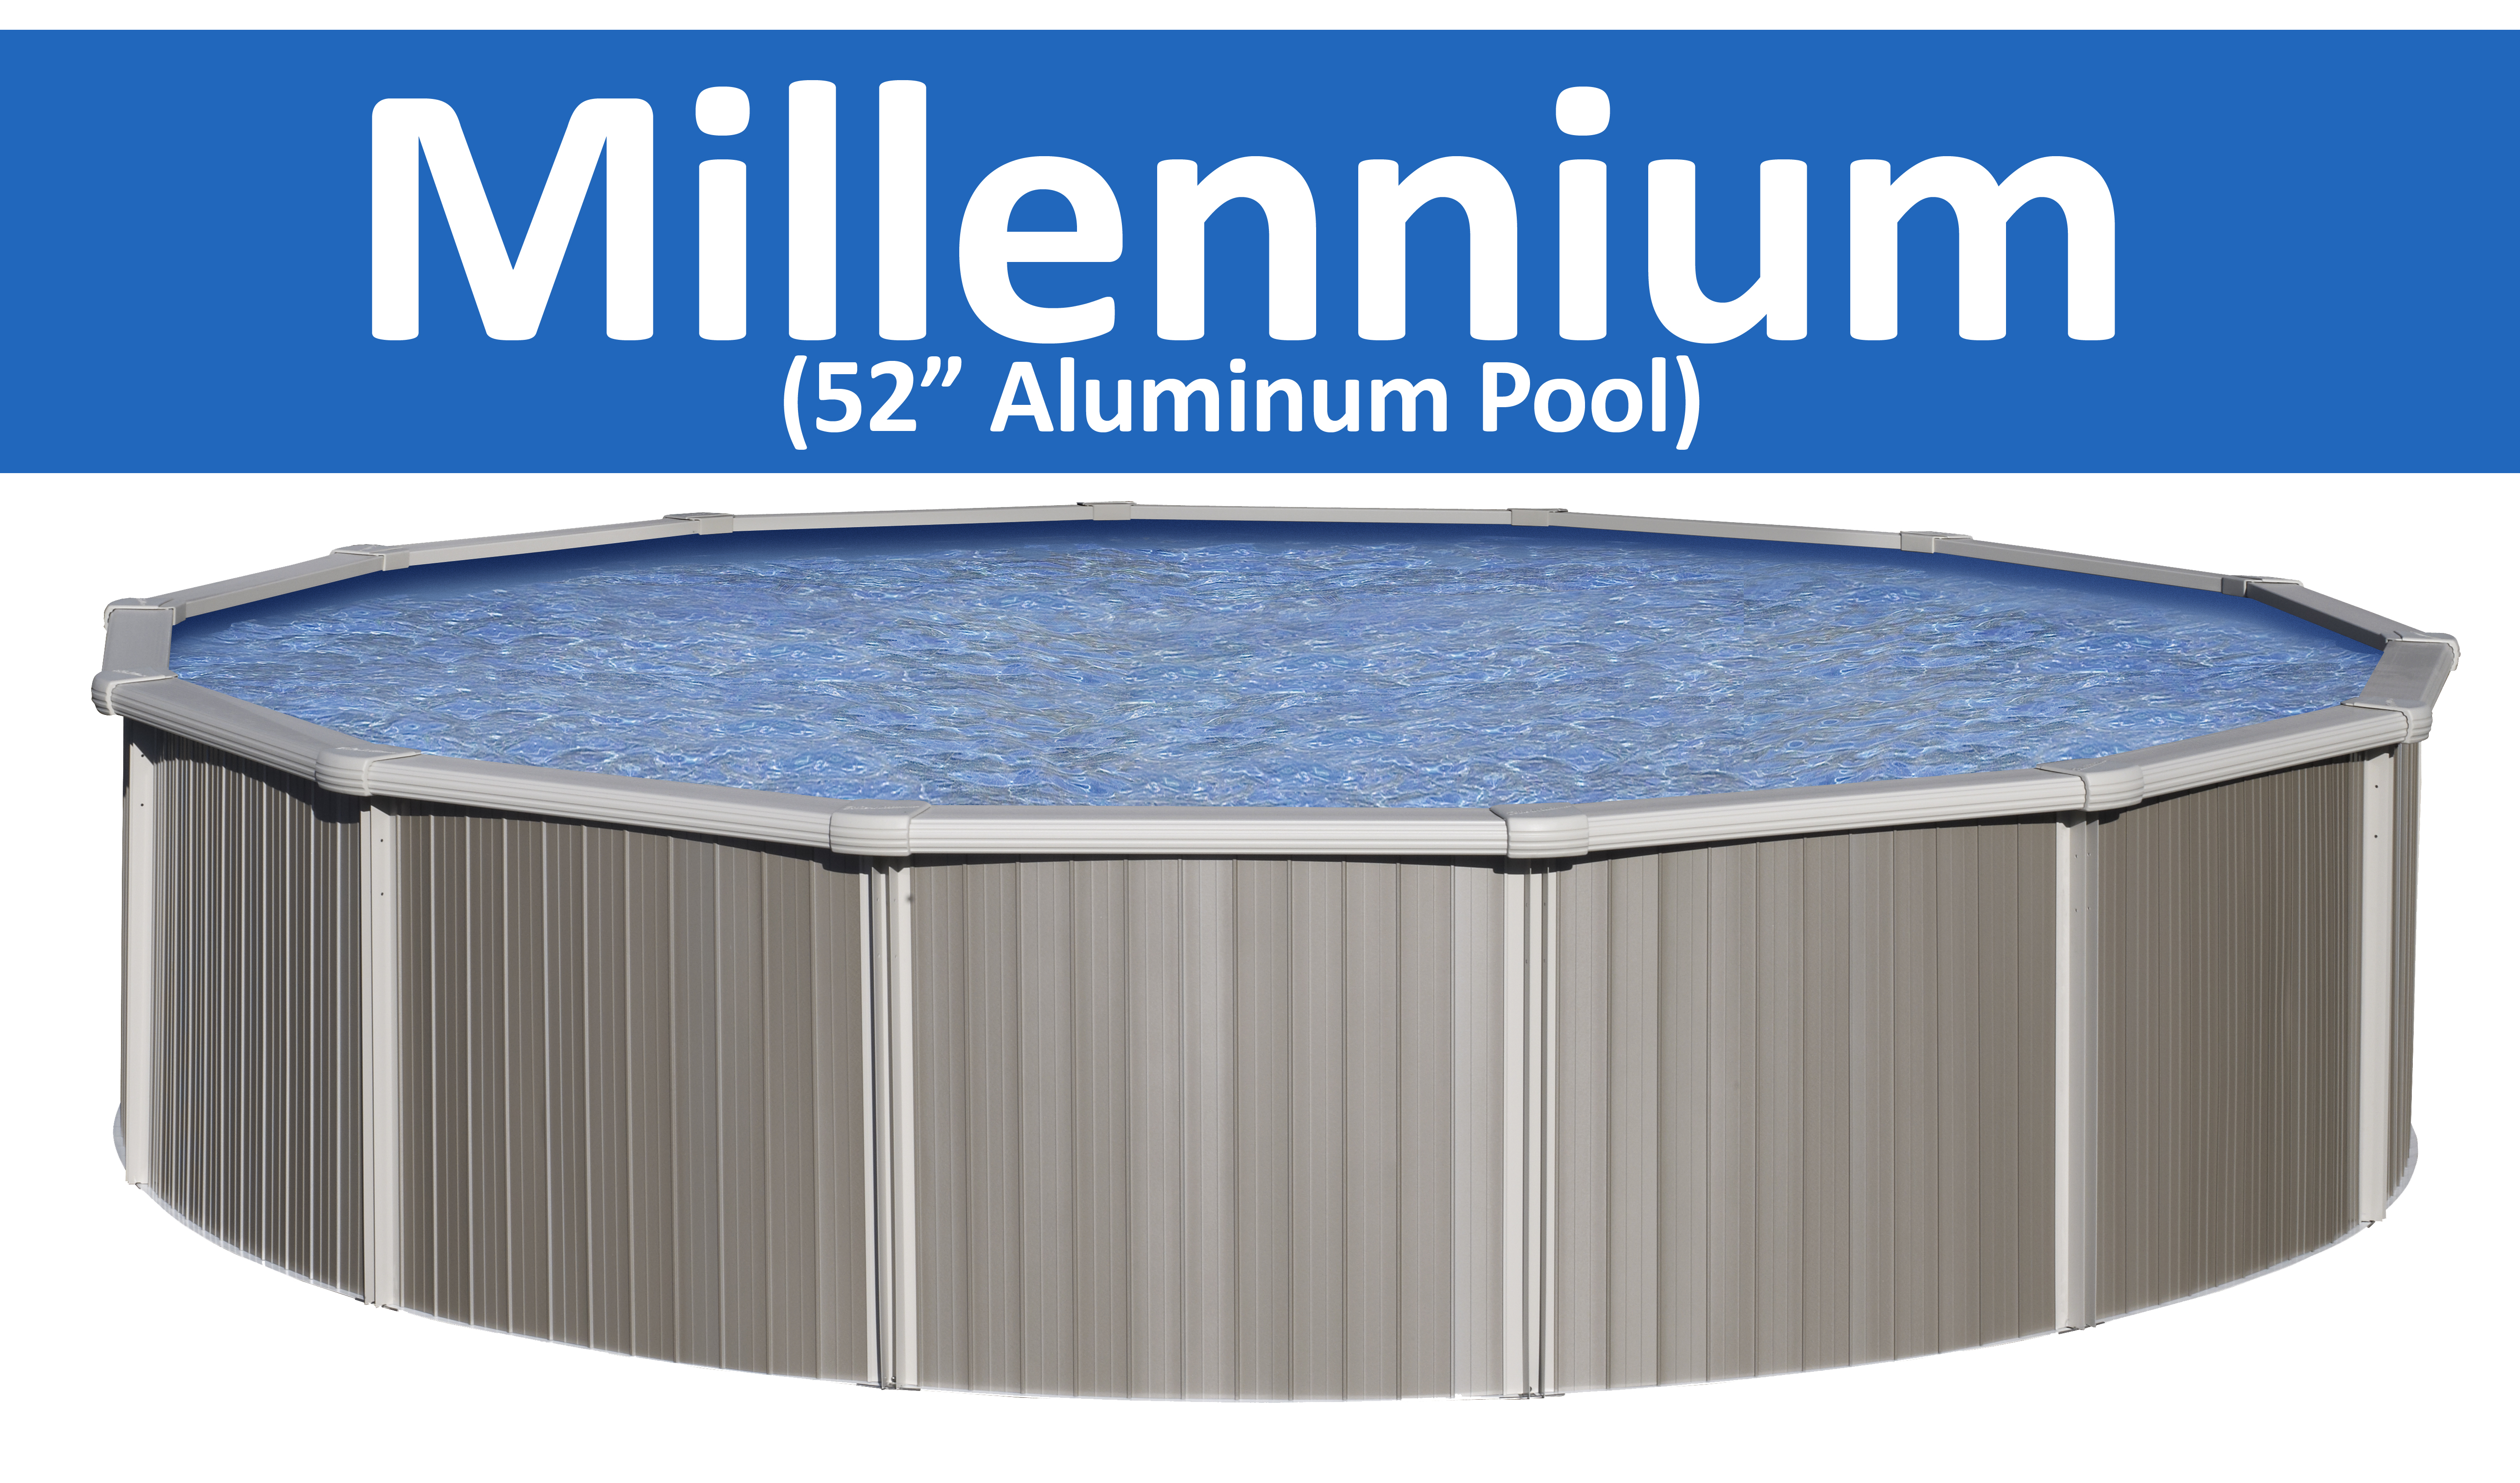 Millennium Swimming Pool